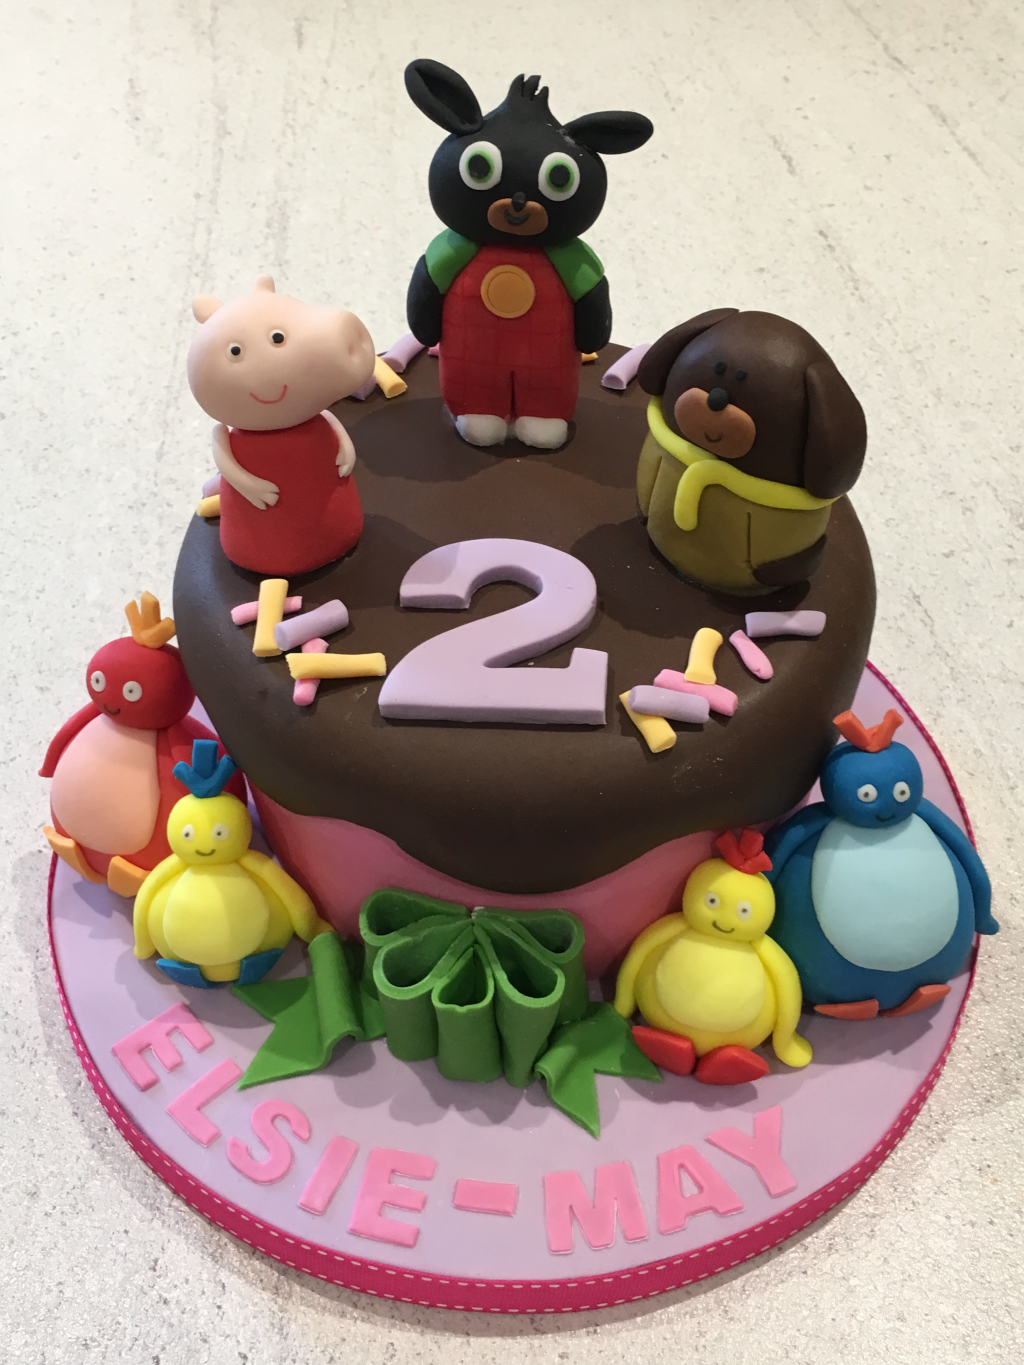 Bing-Duggee-Peppa-pig-and-Twirleywoos-cake